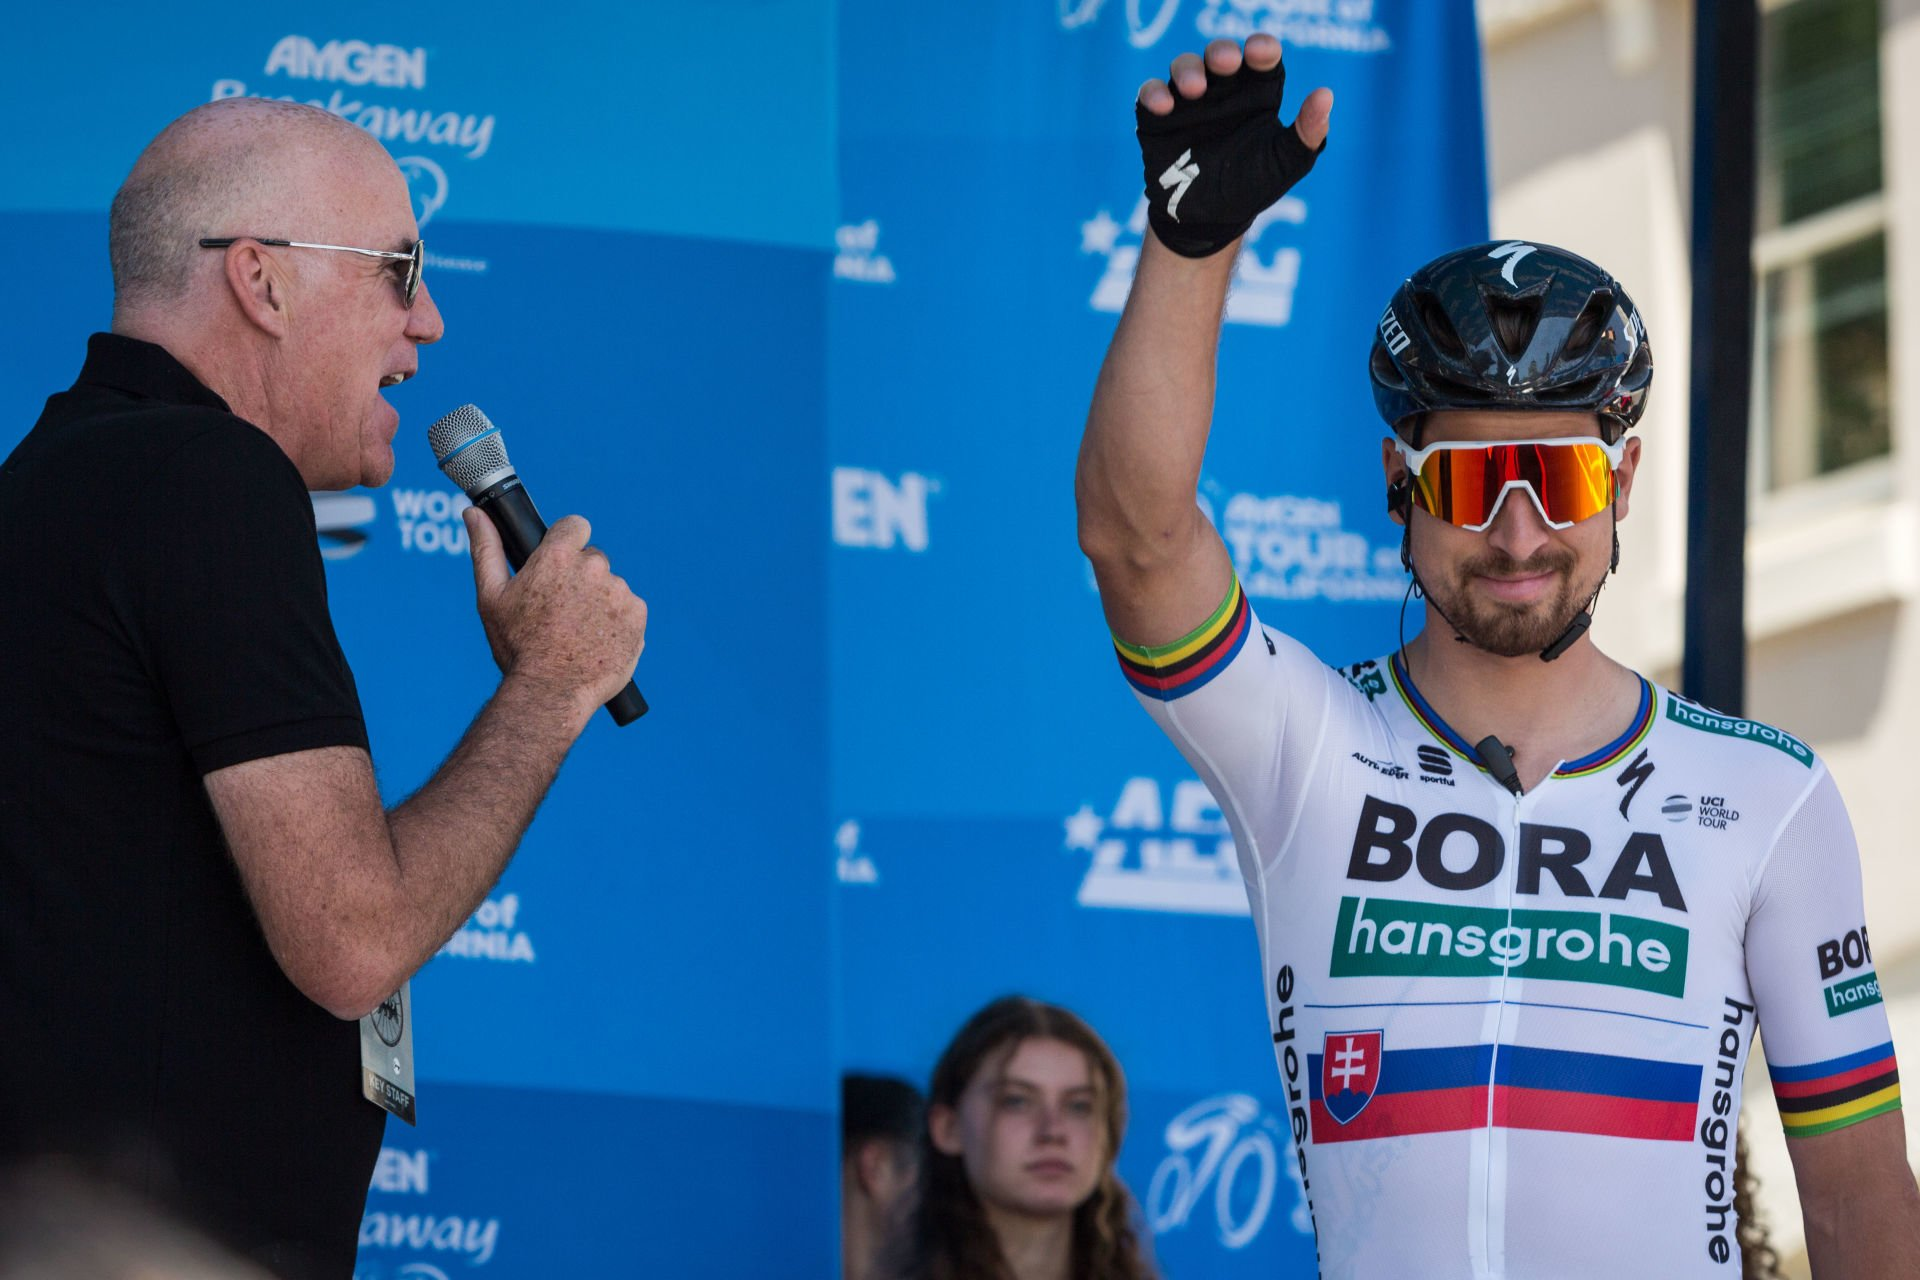 May 12, 2019 - Sacramento, California, U.S - PETER SAGAN, of Team Bora-Hansgrohe (GER) waves to race fans prior to the start of Stage 1 of the 2019 Amgen Tour of California at California's State Capitol city of Sacramento on Sunday afternoon. Stage 1 begins and ends in Sacramento, where the American and Sacramento Rivers meet before heading west. This is the raceÕs 10th year in Sacramento...The 2019 Amgen Tour of California race will showcase scenic California roadways, coastlines and iconic settings, with more than 750 miles of racing throughout the seven-day event. The race will run north to south through the official host communities of Sacramento, Rancho Cordova, South Lake Tahoe, Stockton, Morgan Hill, Laguna Seca, Morro Bay, Pismo Beach, Ventura, Ontario, Mt. Baldy, Santa Clarita and Pasadena. (Credit Image: © Tracy Barbutes/ZUMA Wire)  KOLARSTWO SZOSOWE FOT. ZUMA/NEWSPIX.PL POLAND ONLY! --- Newspix.pl *** Local Caption *** www.newspix.pl  mail us: info@newspix.pl call us: 0048 022 23 22 222 --- Polish Picture Agency by Ringier Axel Springer Poland